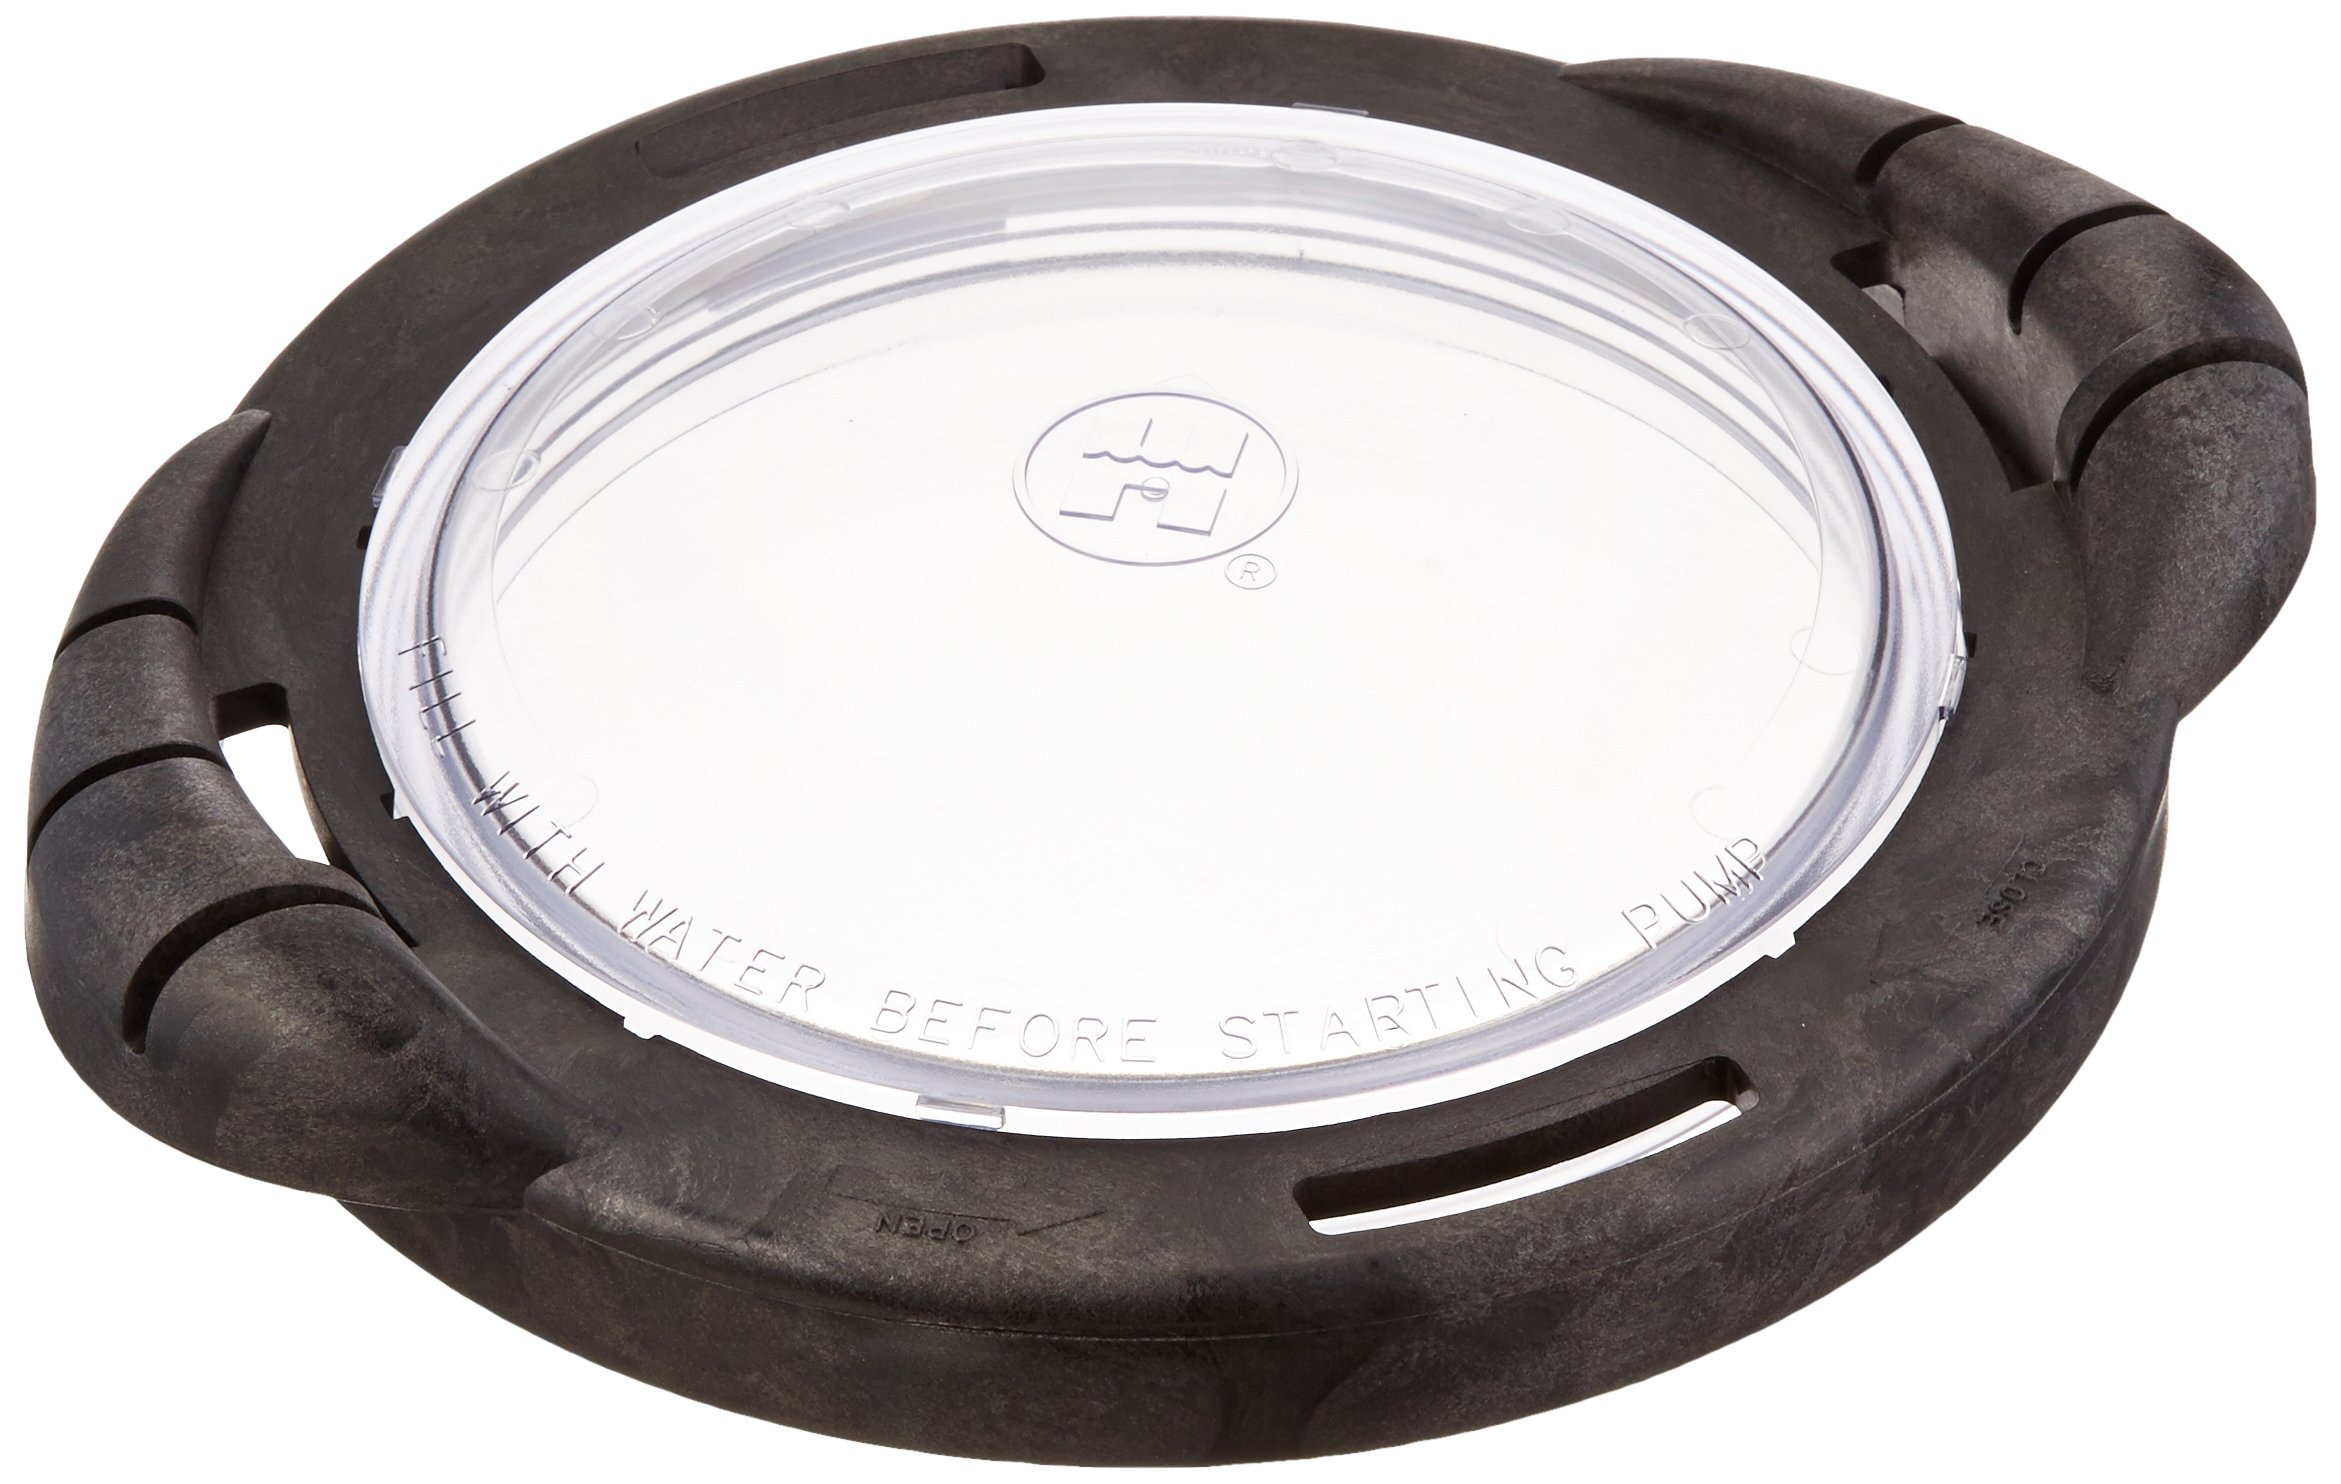 Hayward SPX4000DLT Strainer Cover Replacement Kit for Hayward Northstar Pump